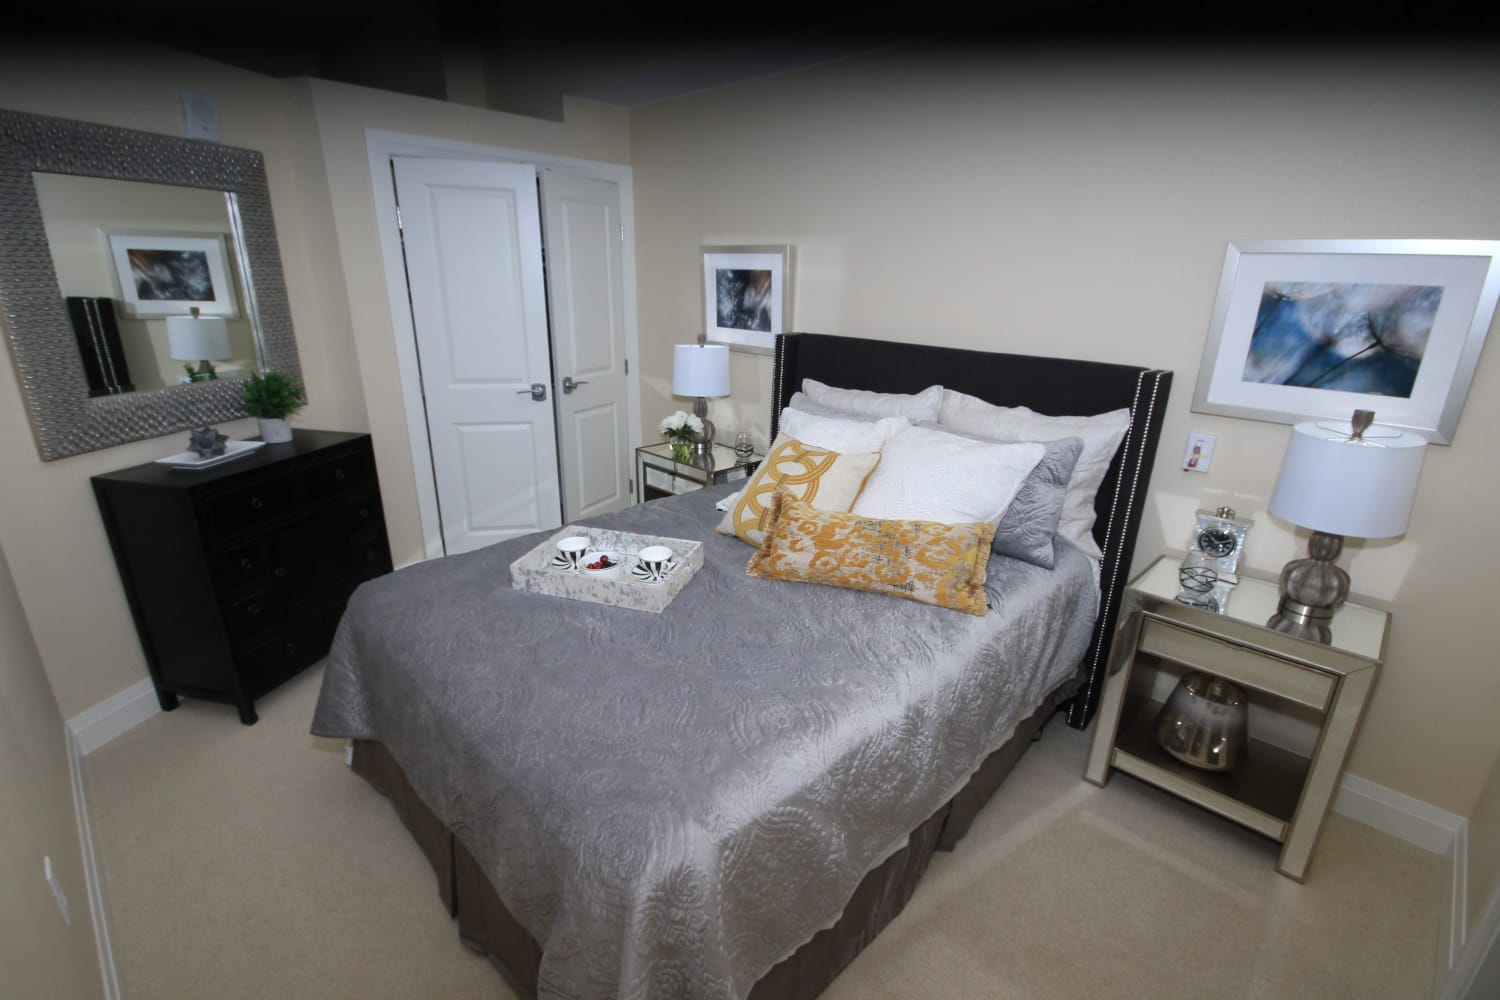 Spacious and well-appointed bedroom at Village at Belmar in Lakewood